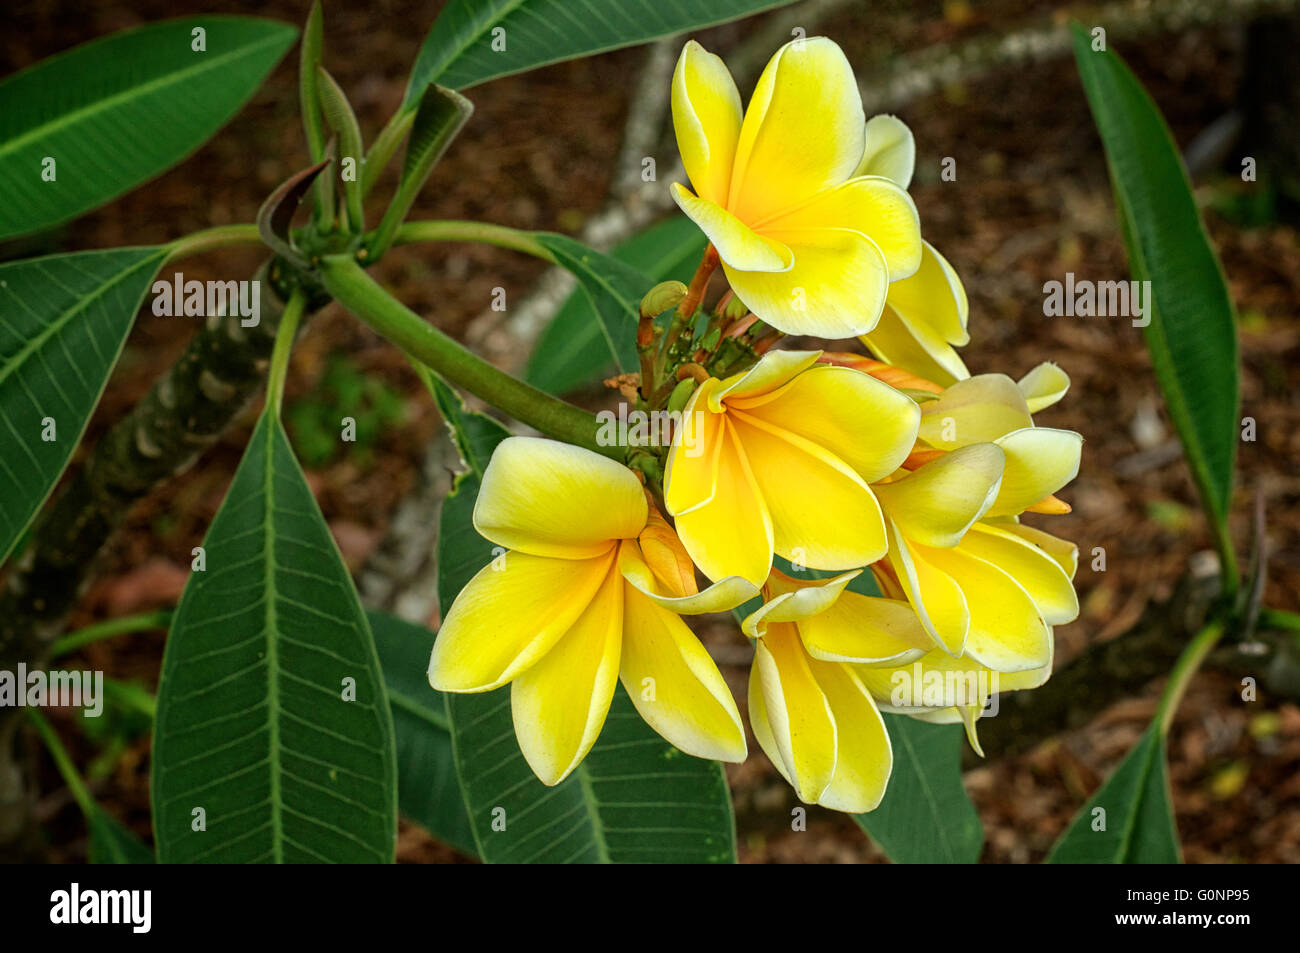 A Cluster Of Beautiful Yellow Plumeria Flowers In Bloom In Spring